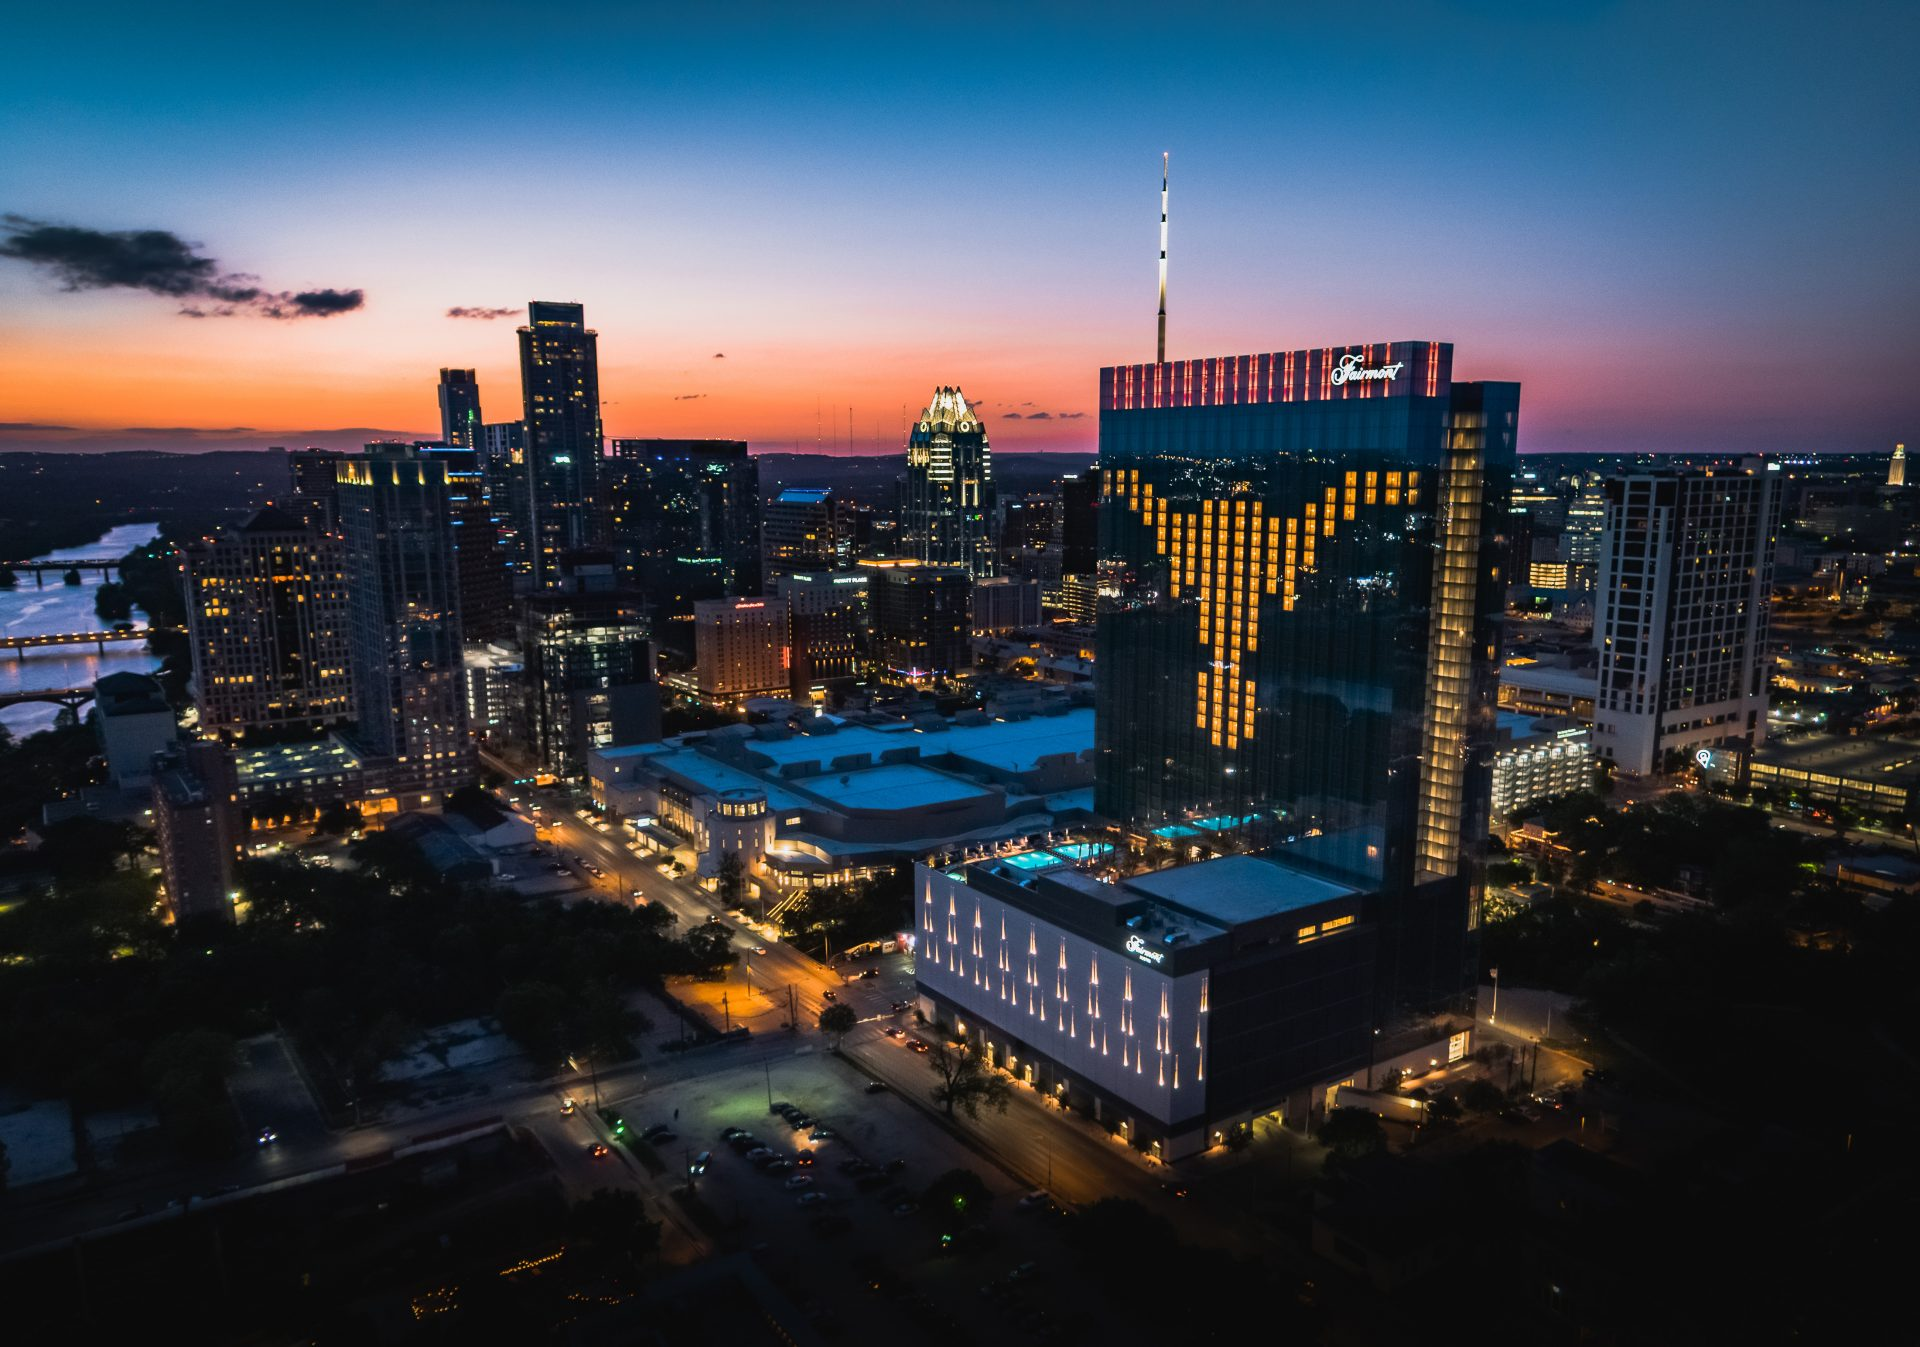 Night aerial view of downtown and Fairmont Austin with rooms lights lit to make the shape of texas athletics mascot